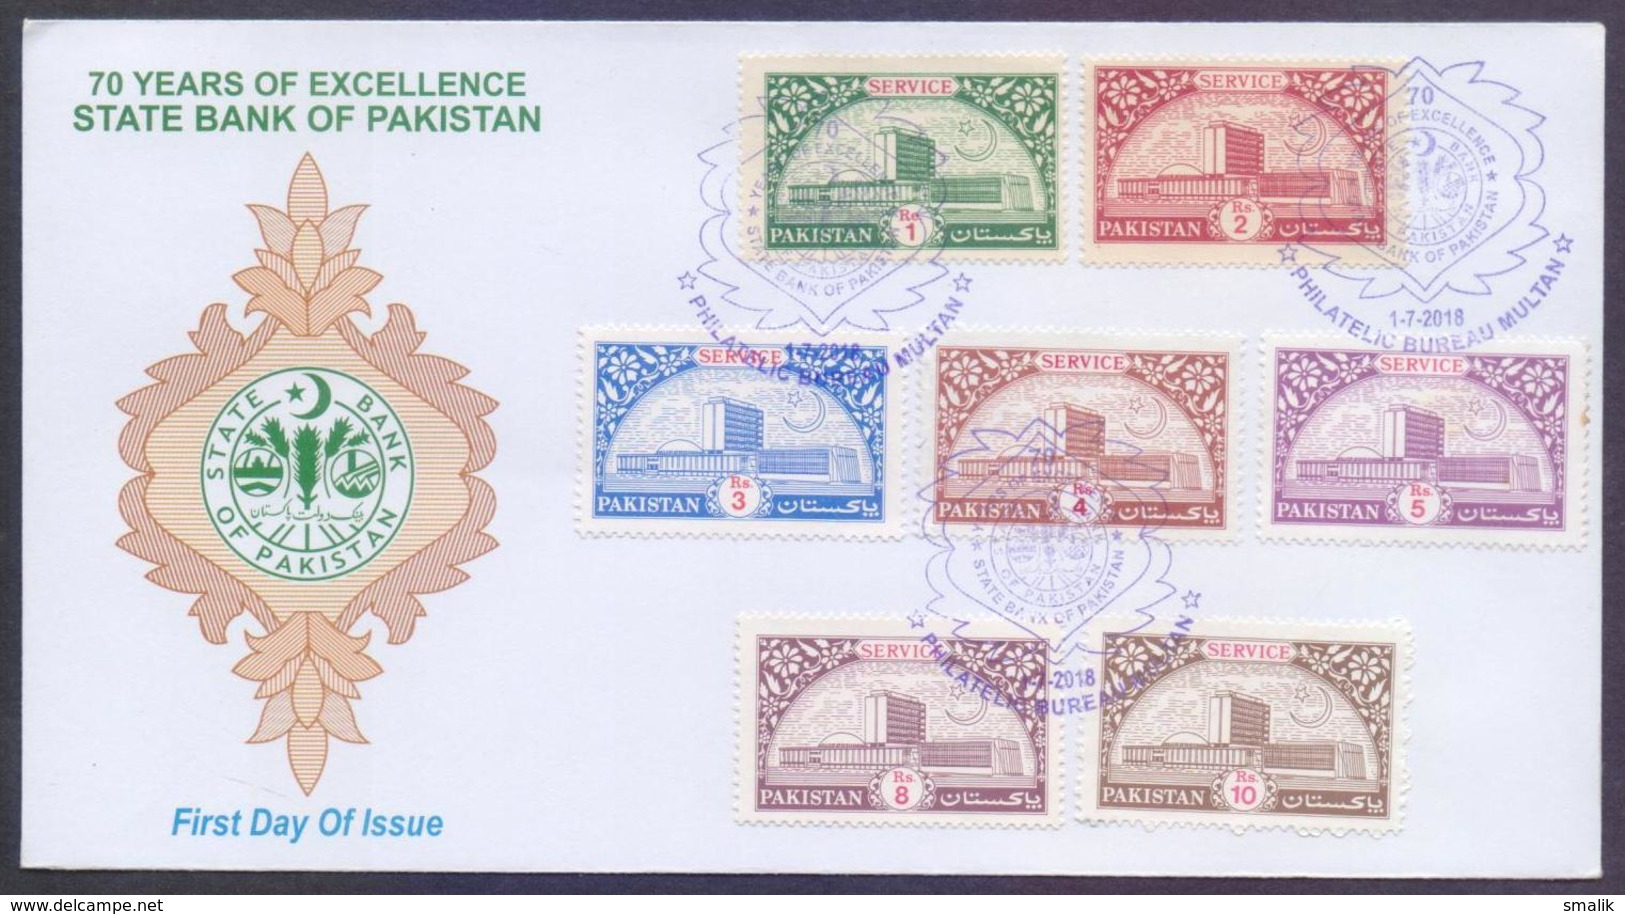 PAKISTAN 2018 - SERVICE (State Bank) Complete Set On New FDC Cover, Cancelled From MULTAN Philatelic Bureau - Pakistan